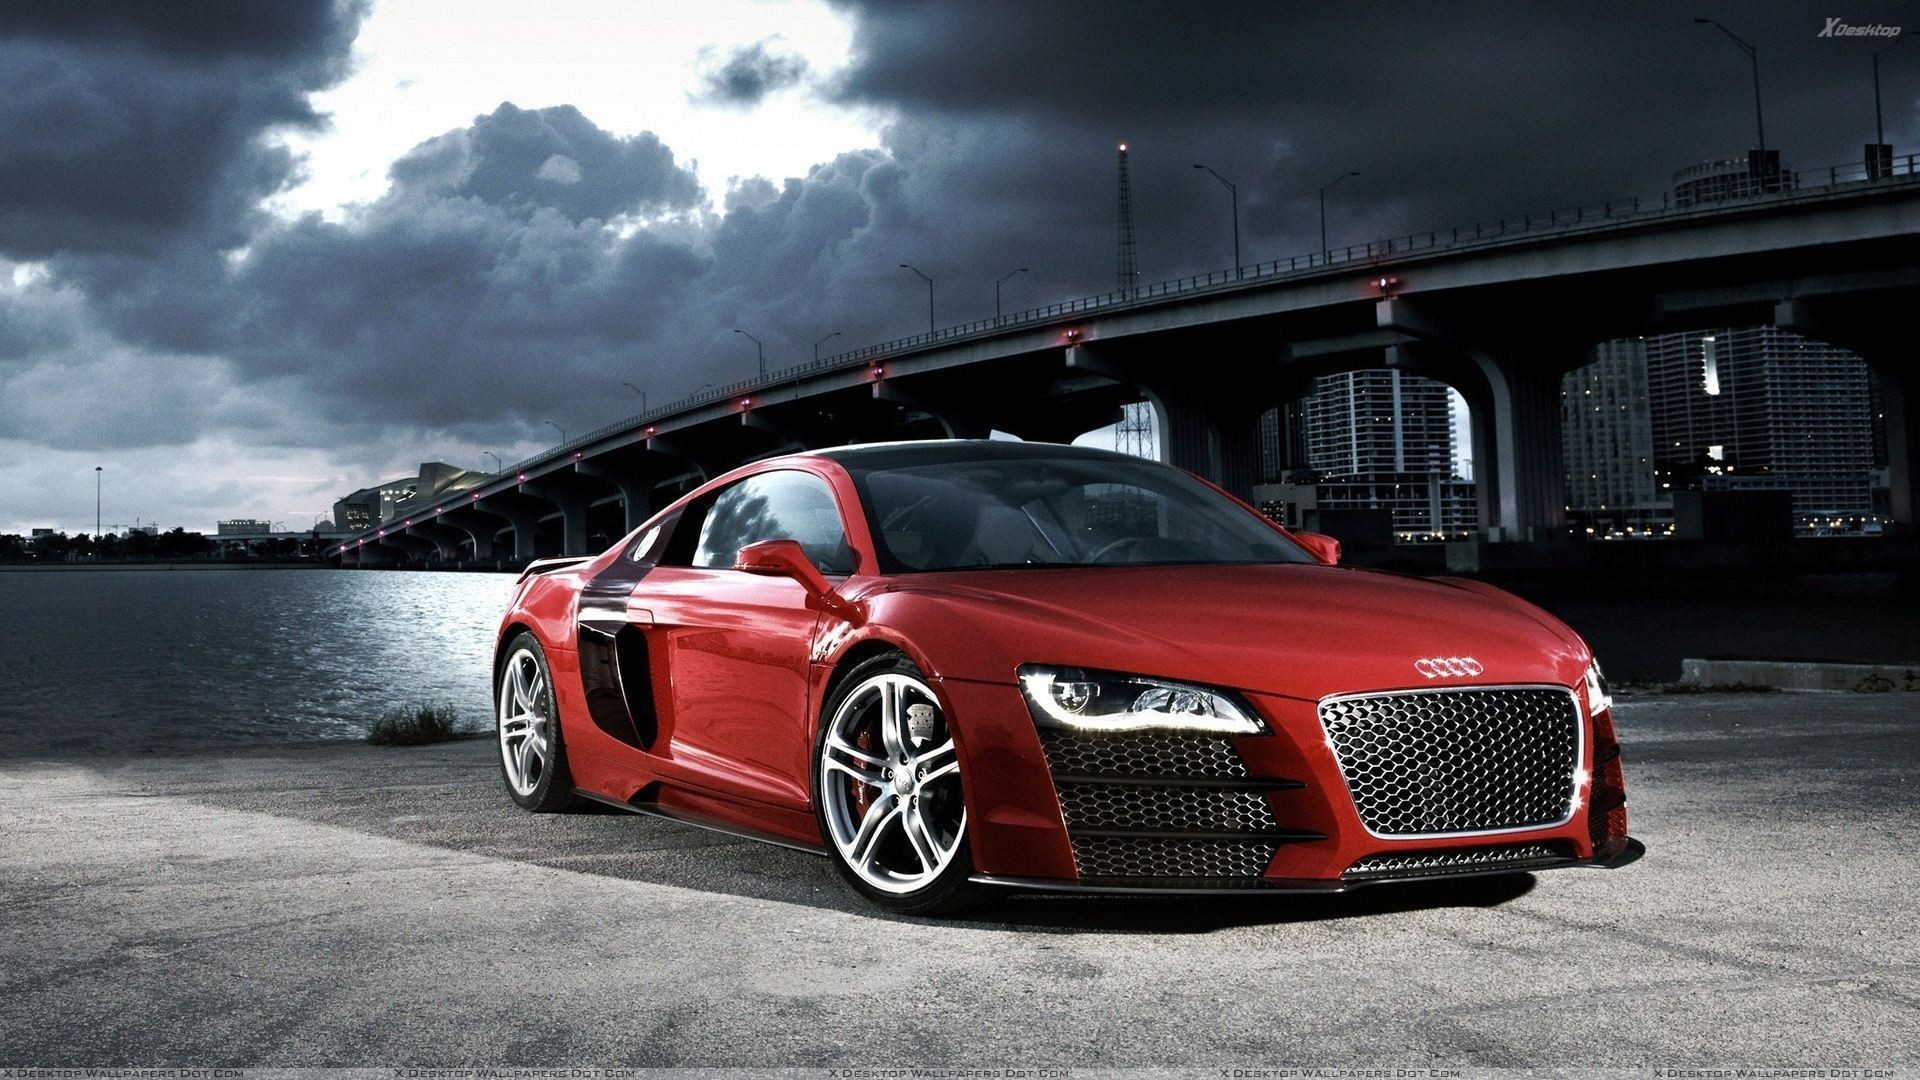 Res: 1920x1080, Audi r8 car wallpaper